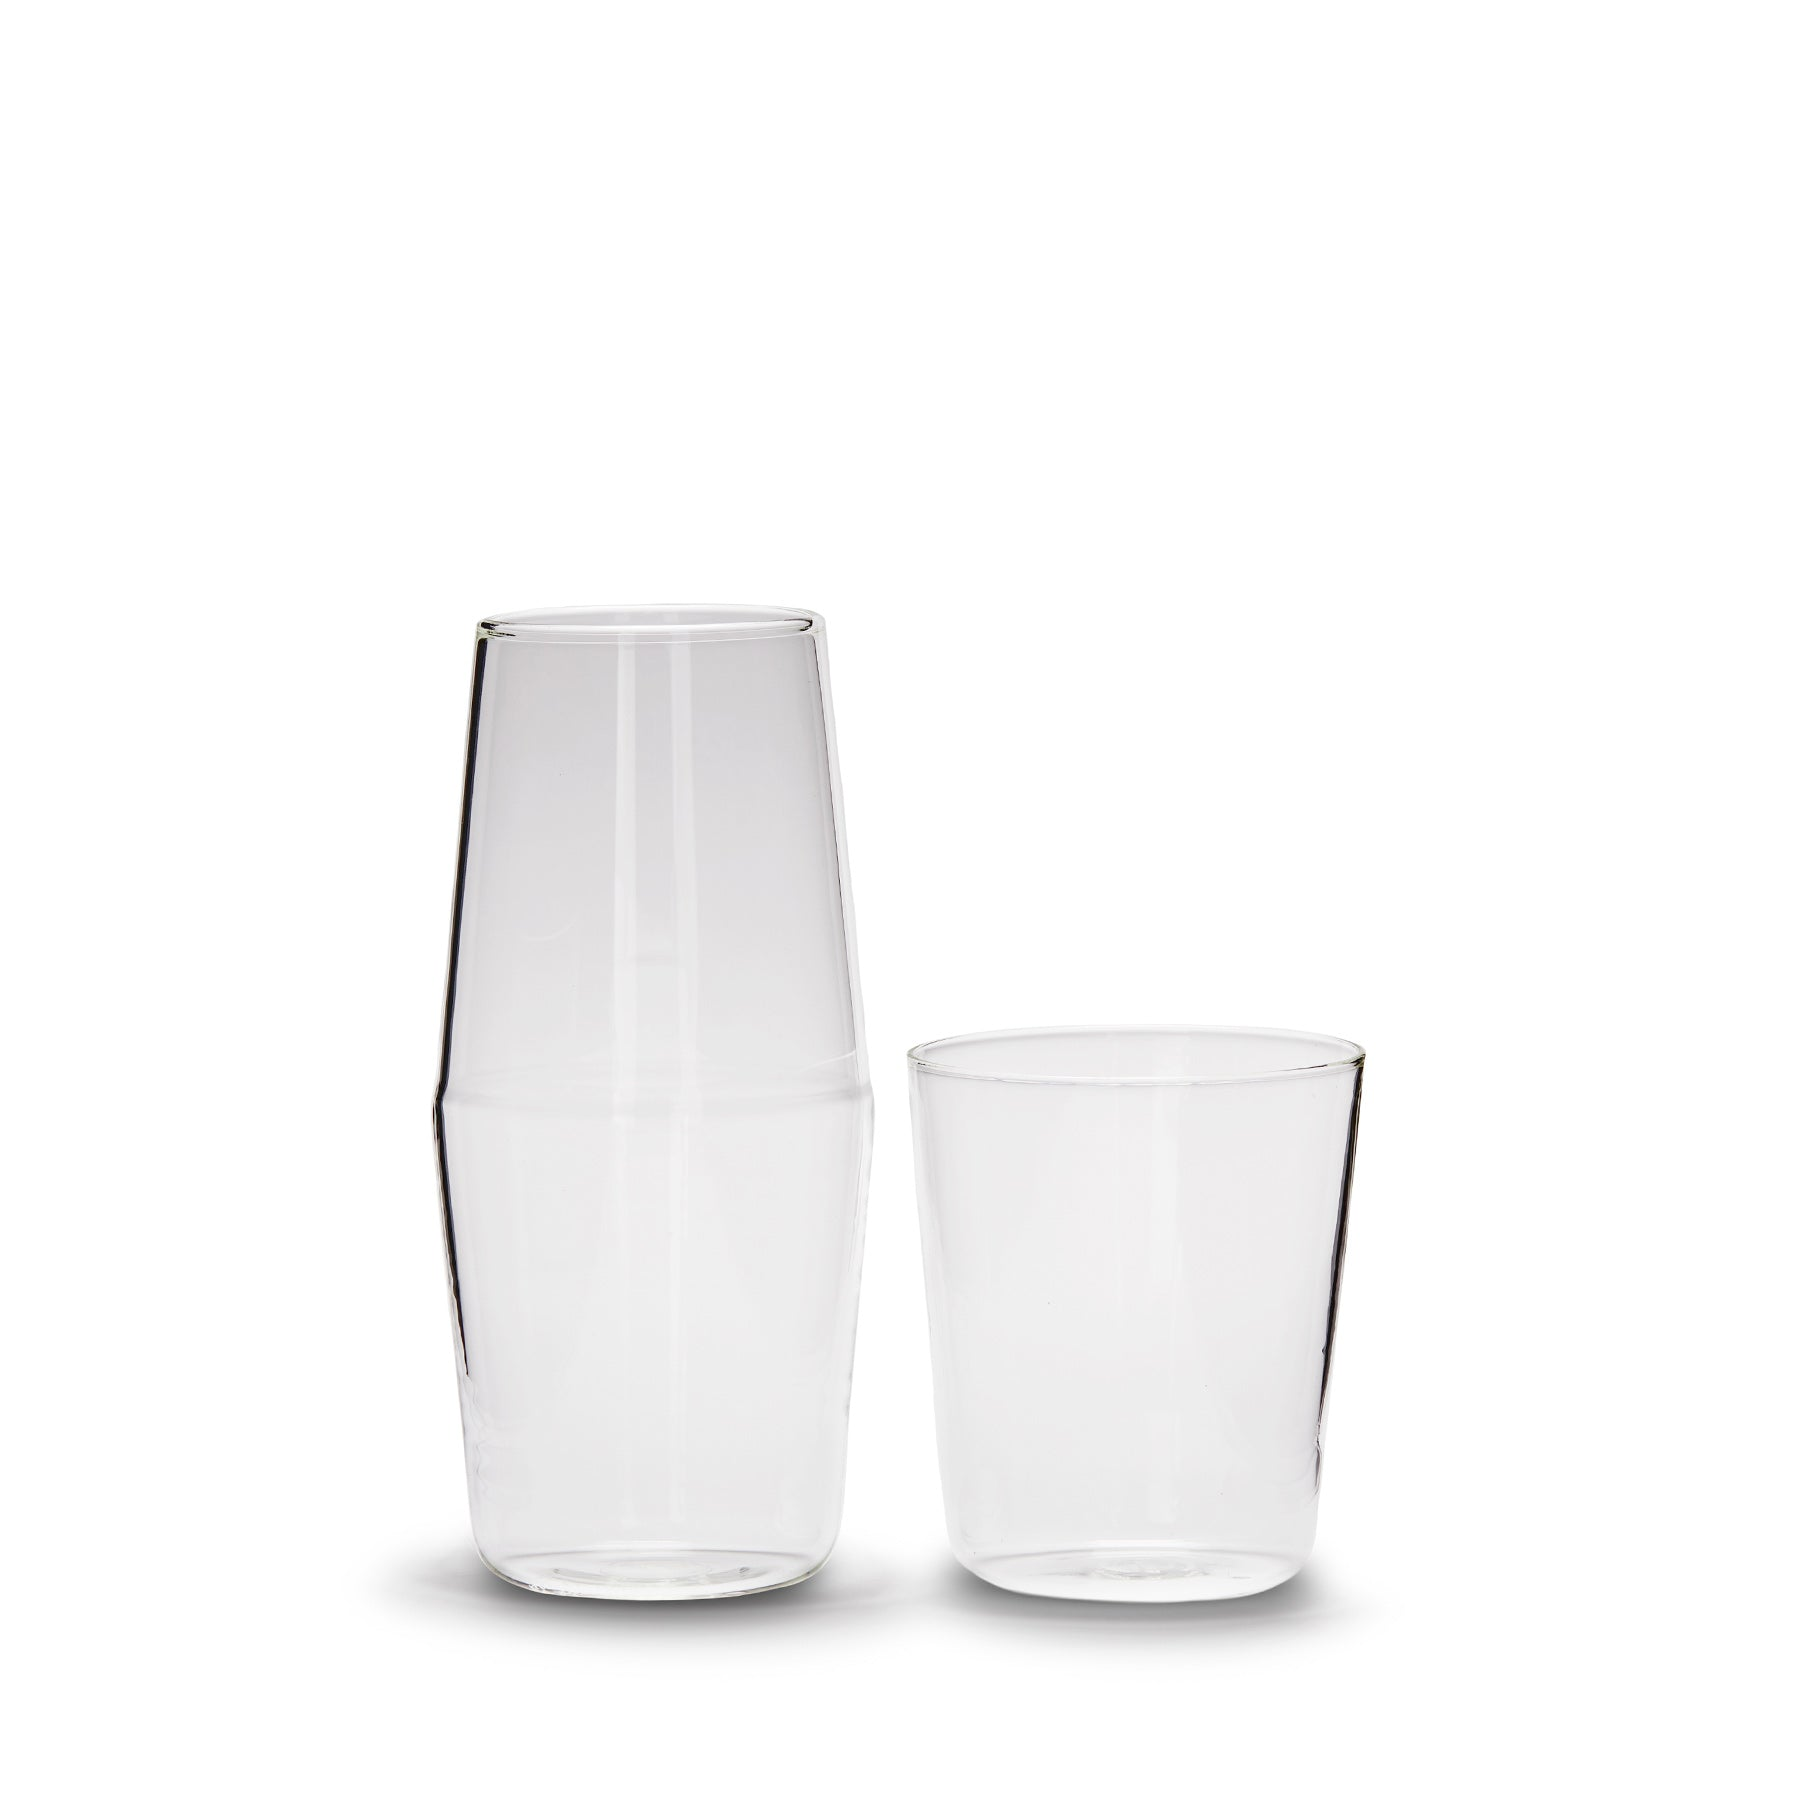 Luisa Bonne Nuit Carafe and Cup in Clear Zoom Image 1